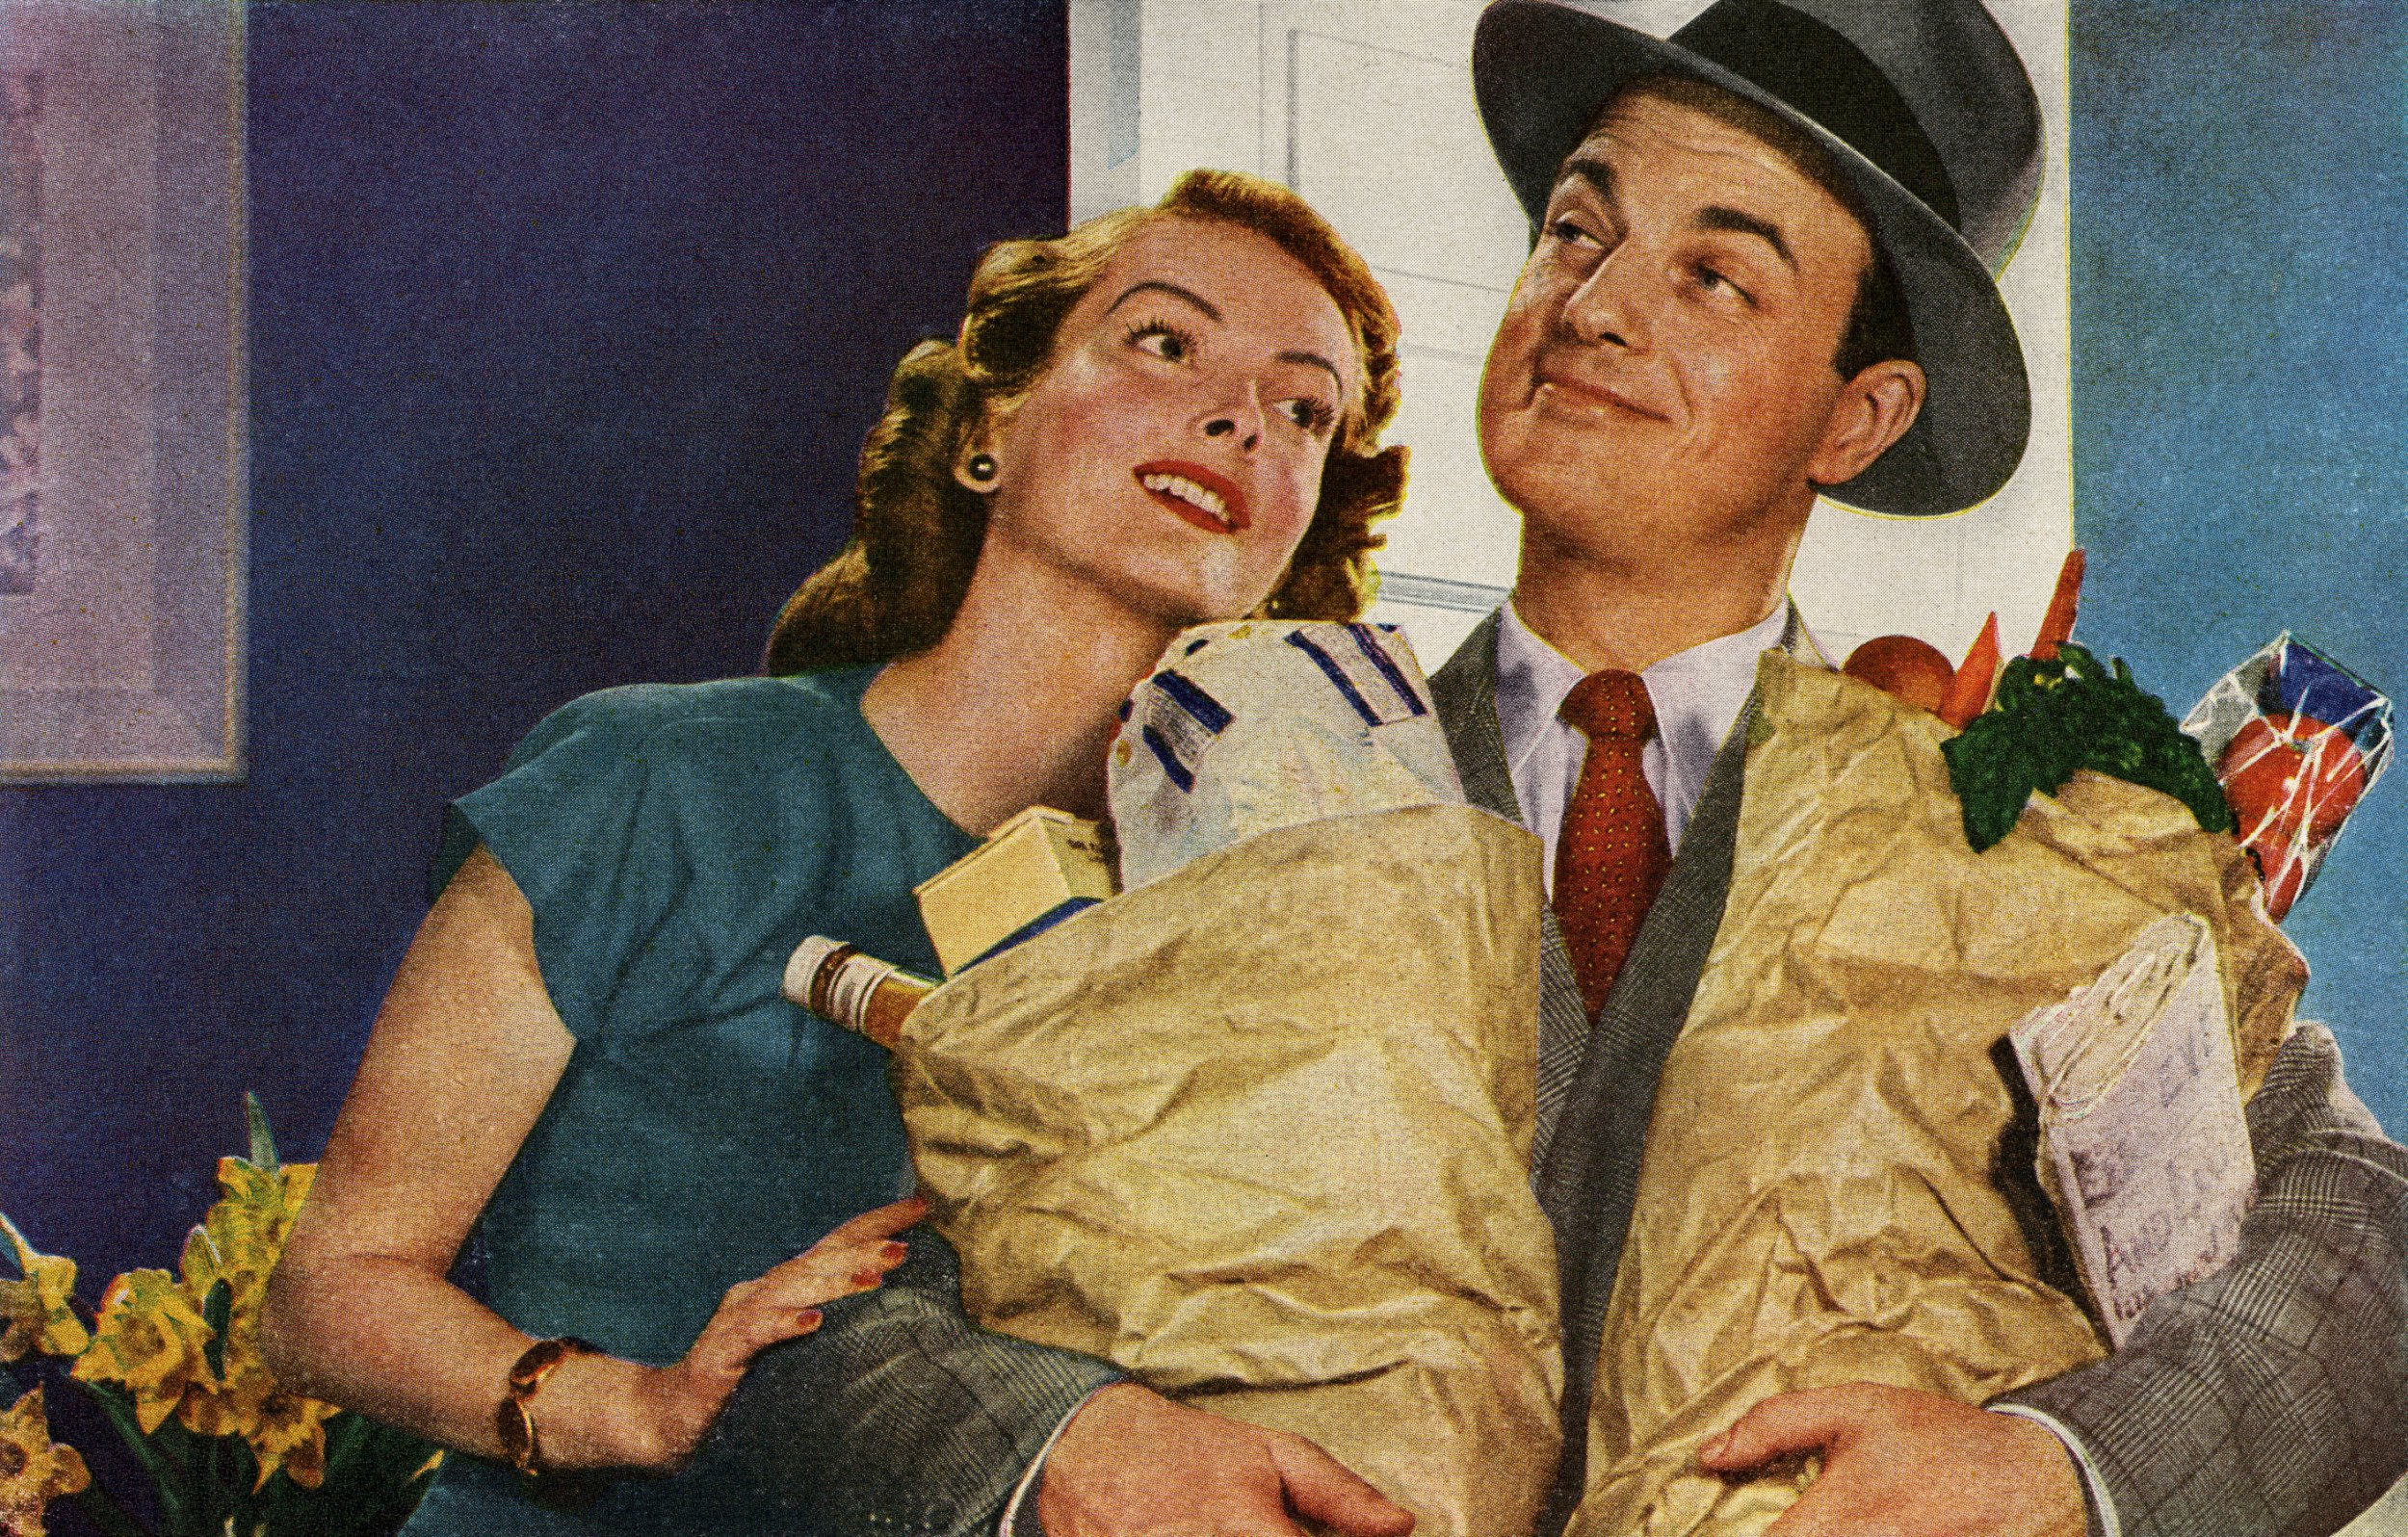 Keep your spouse happy and you'll live longer – science says so